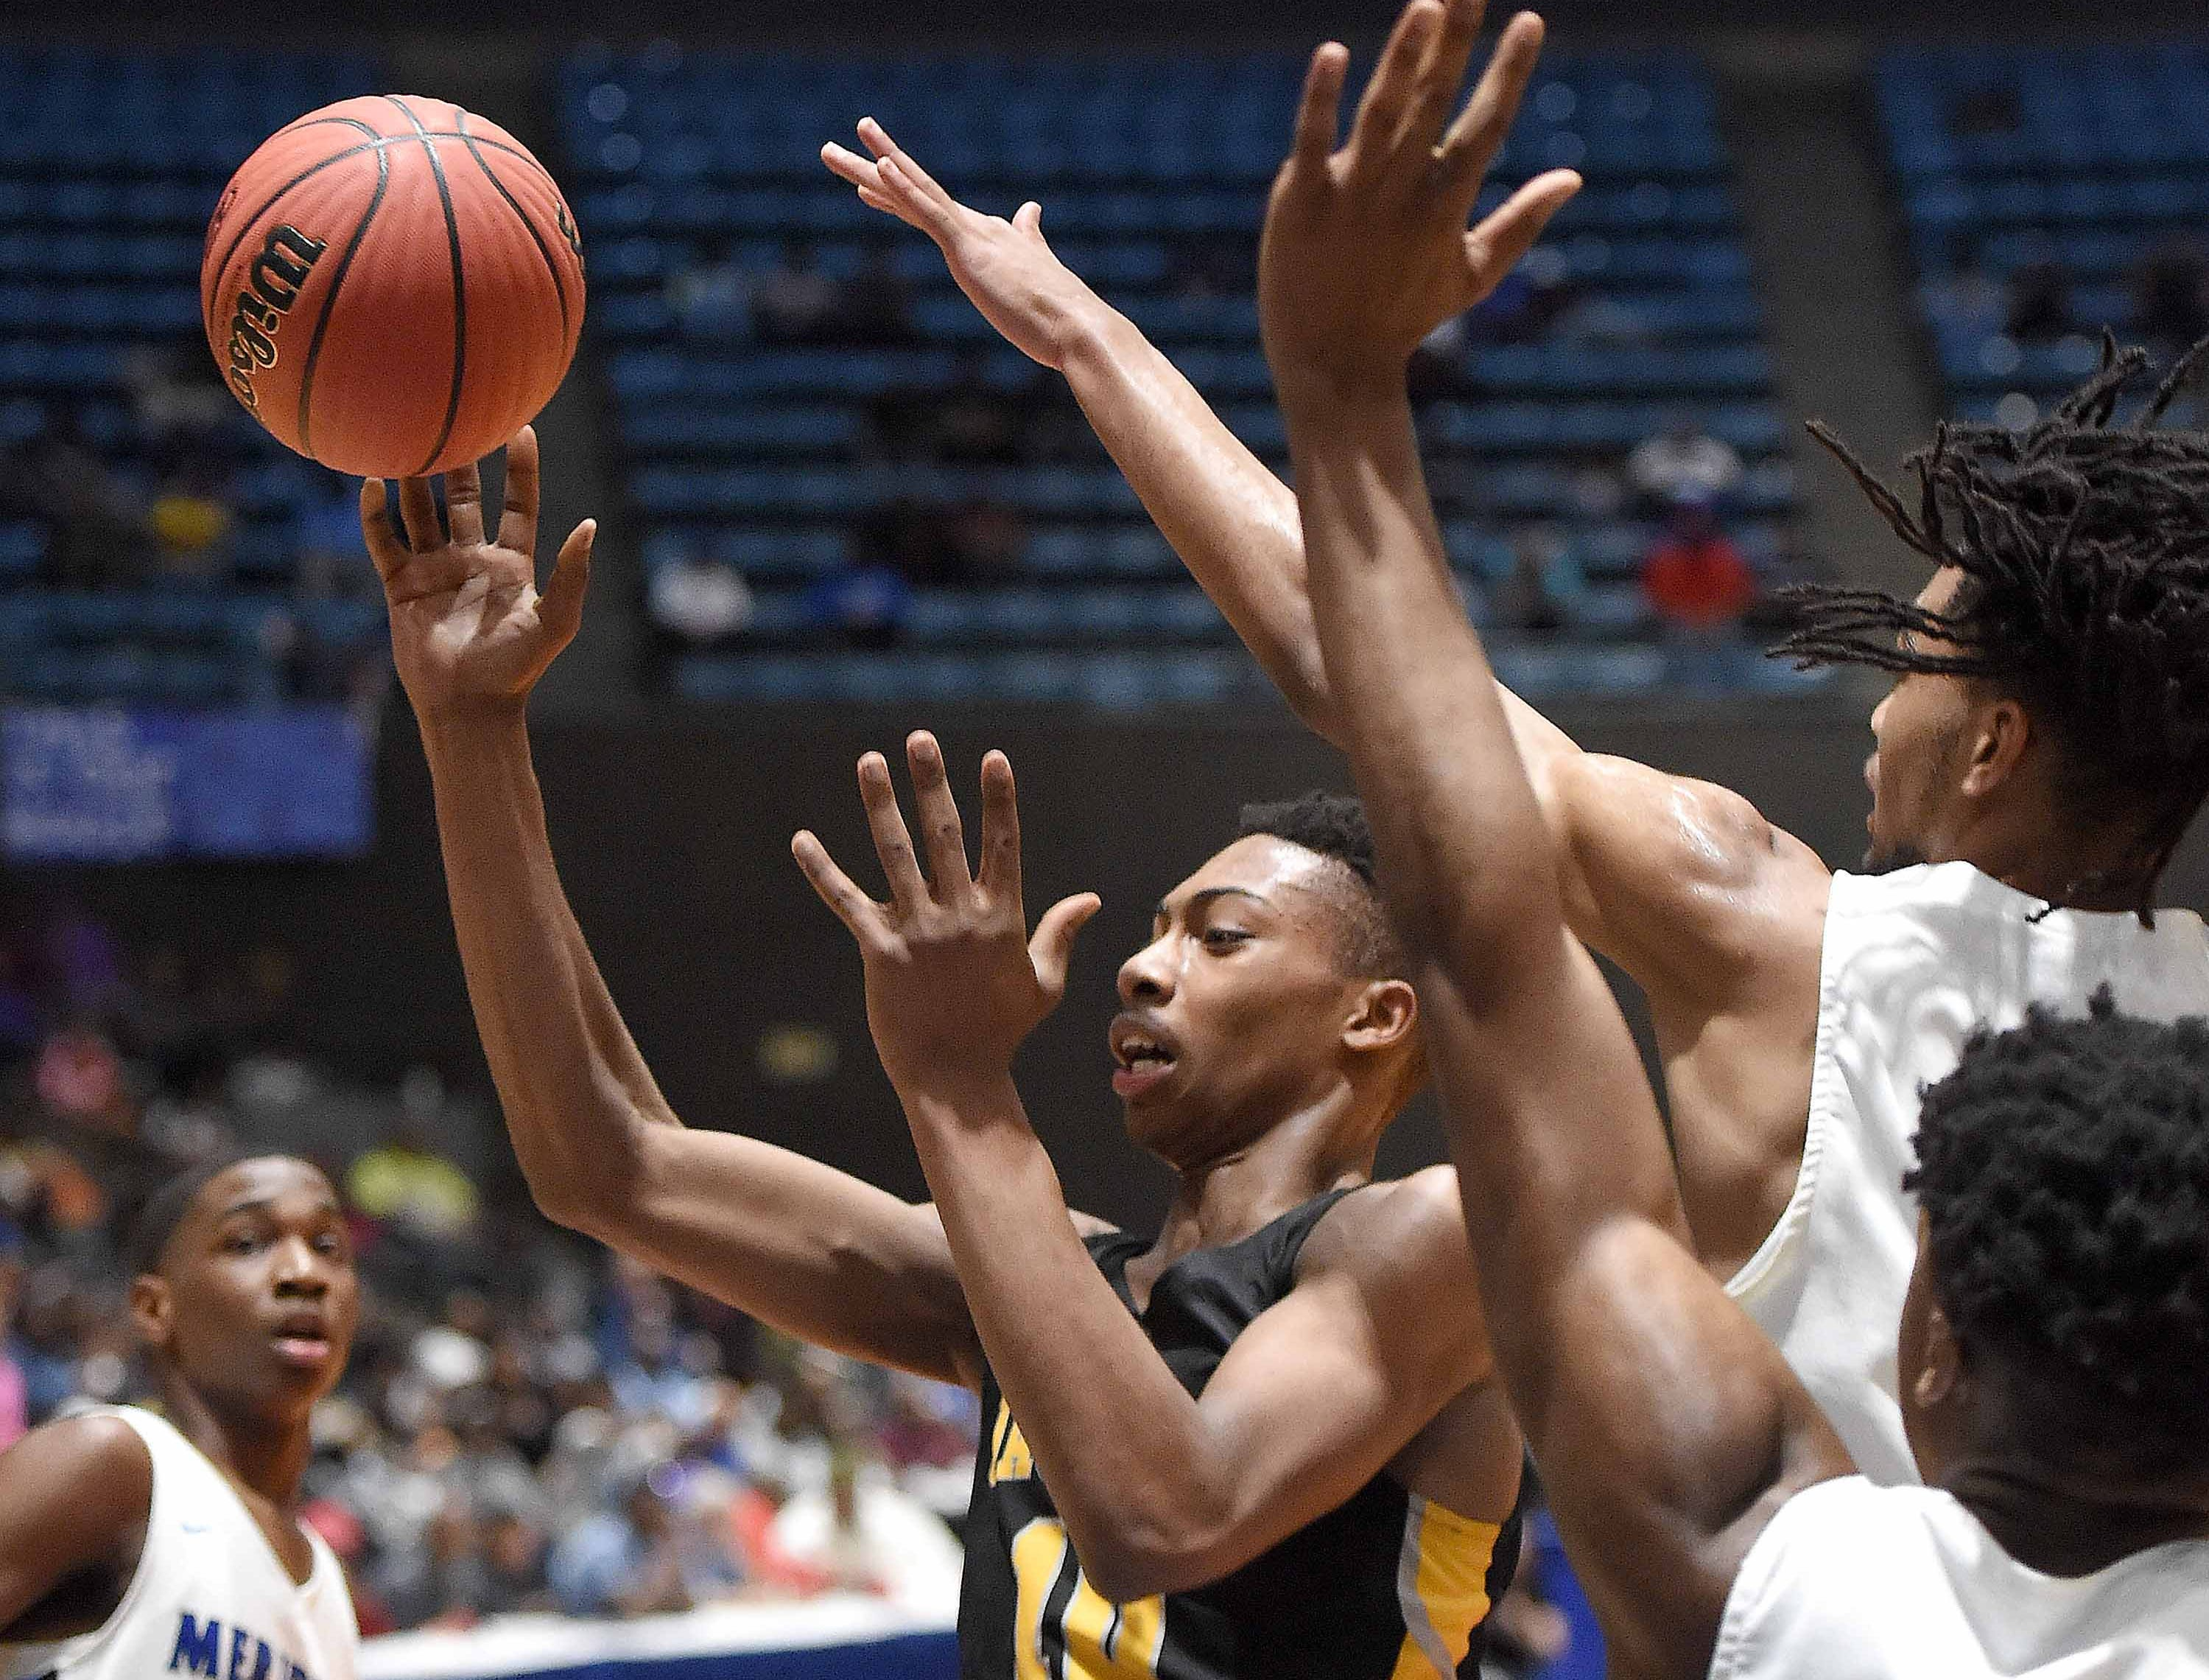 Starkville's Zeke Cook (10) passes away from a Meridian double team in the Class 6A finals of the MHSAA C Spire State Basketball Championships at the Mississippi Coliseum in Jackson, Miss., on Saturday, March 9, 2019.